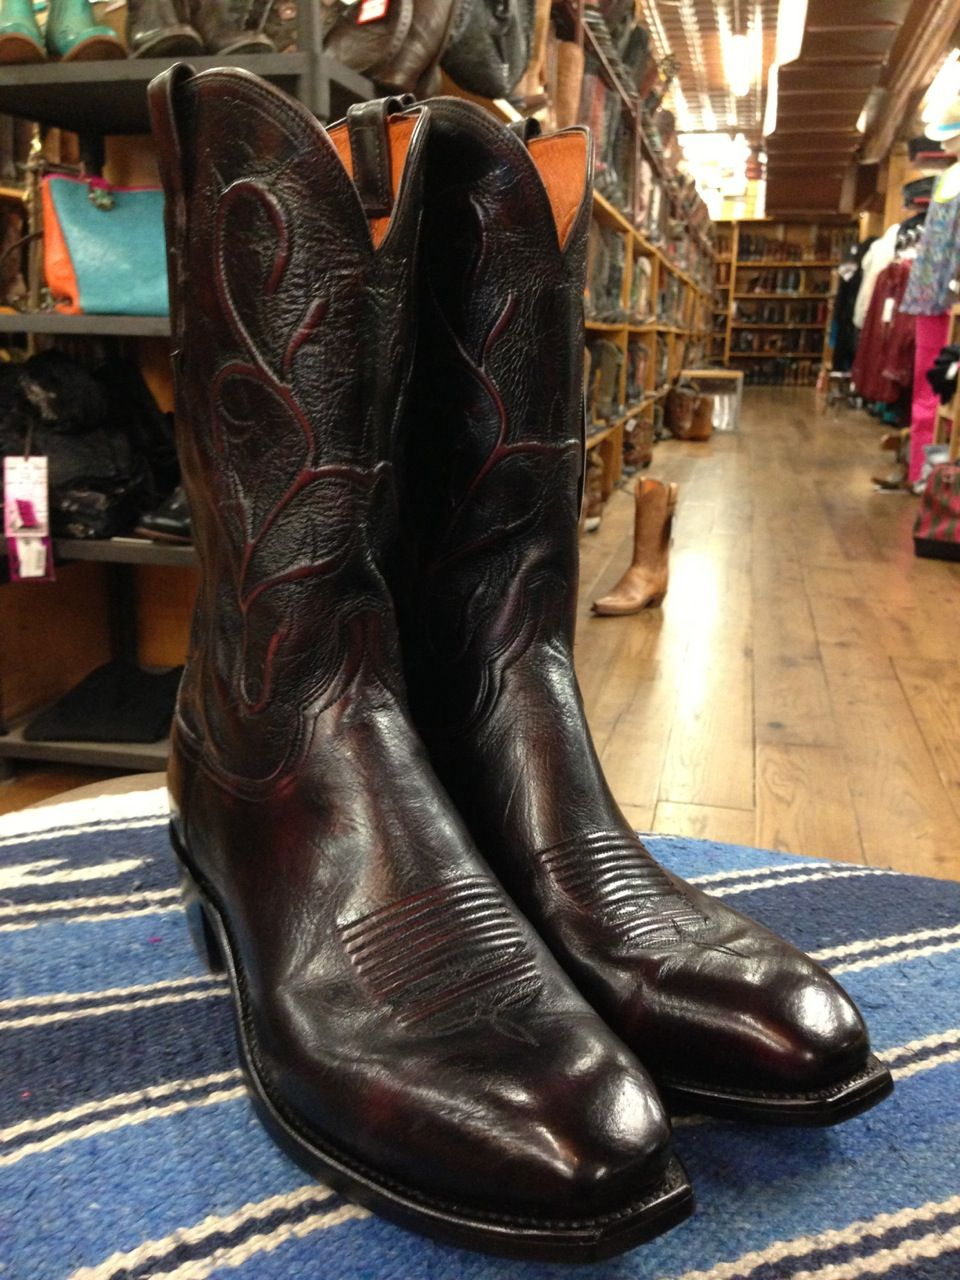 How to Buy Cowboy Boots | Cowboys, Cowboy boots and Boots